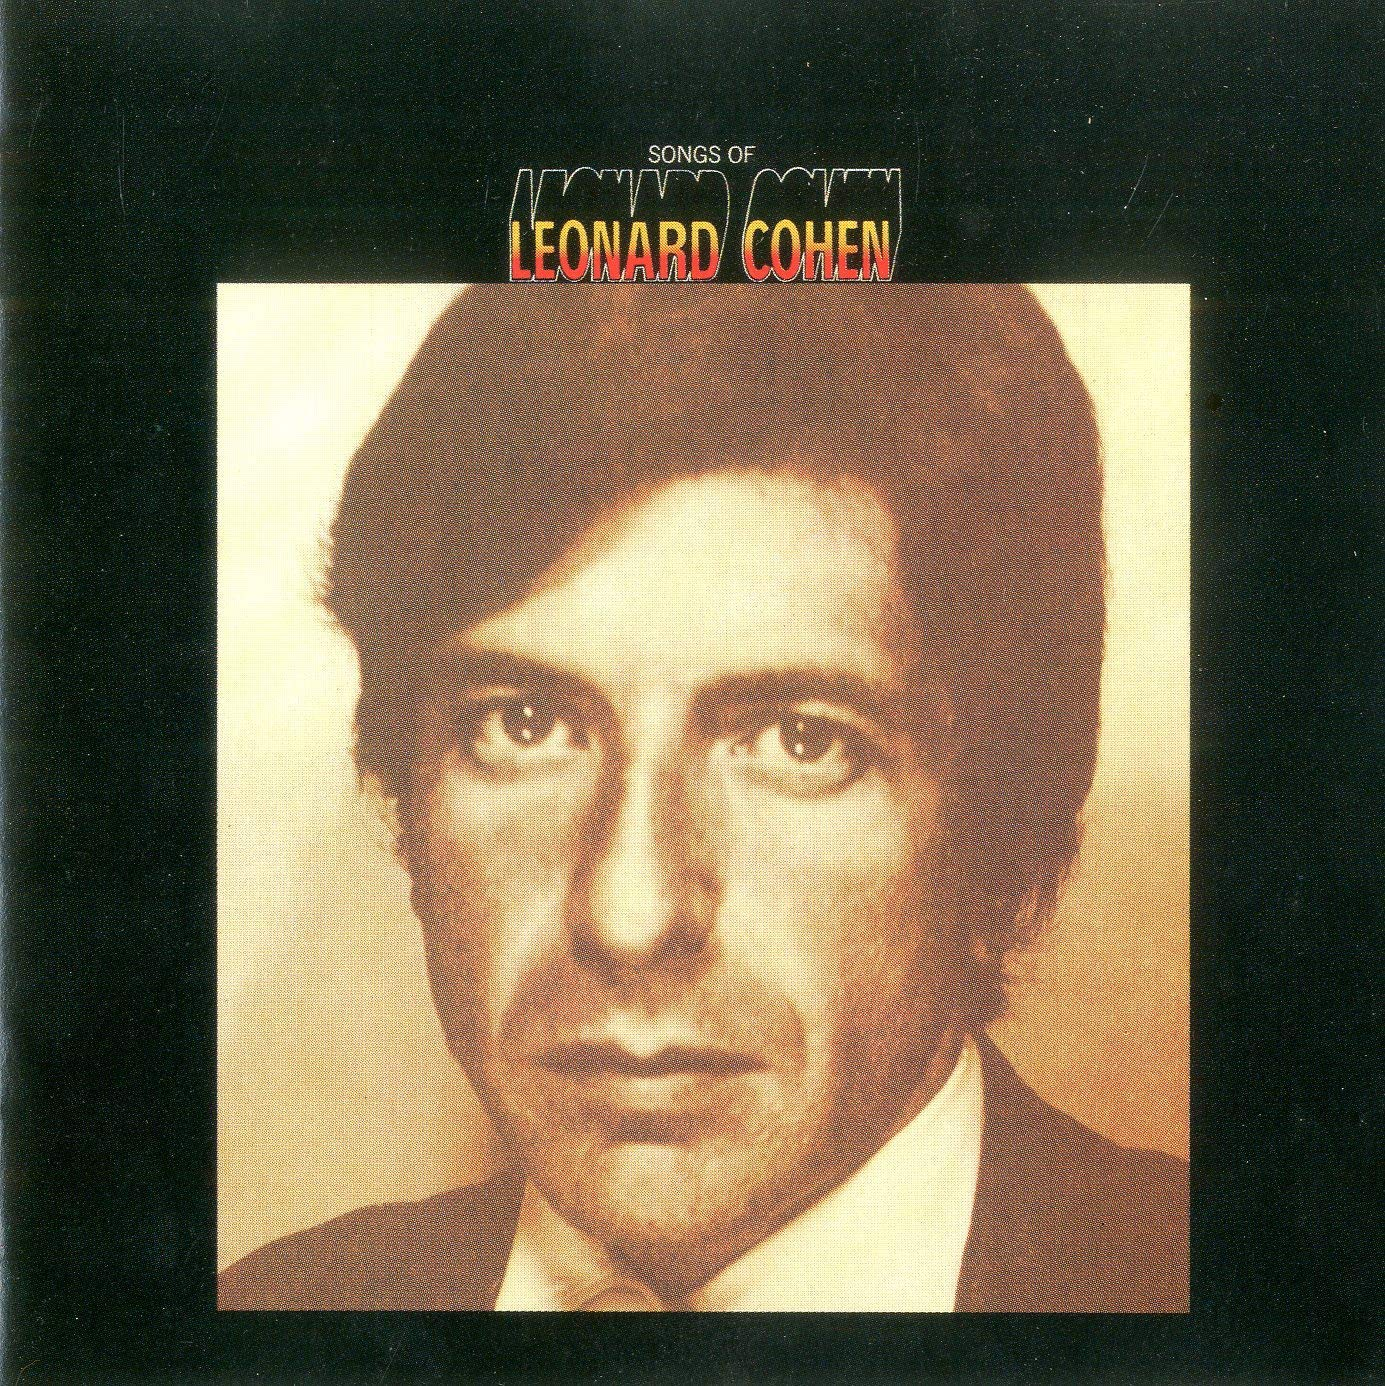 Leonard Cohen Songs of Leonard Cohen The 100 Greatest Albums of All Time